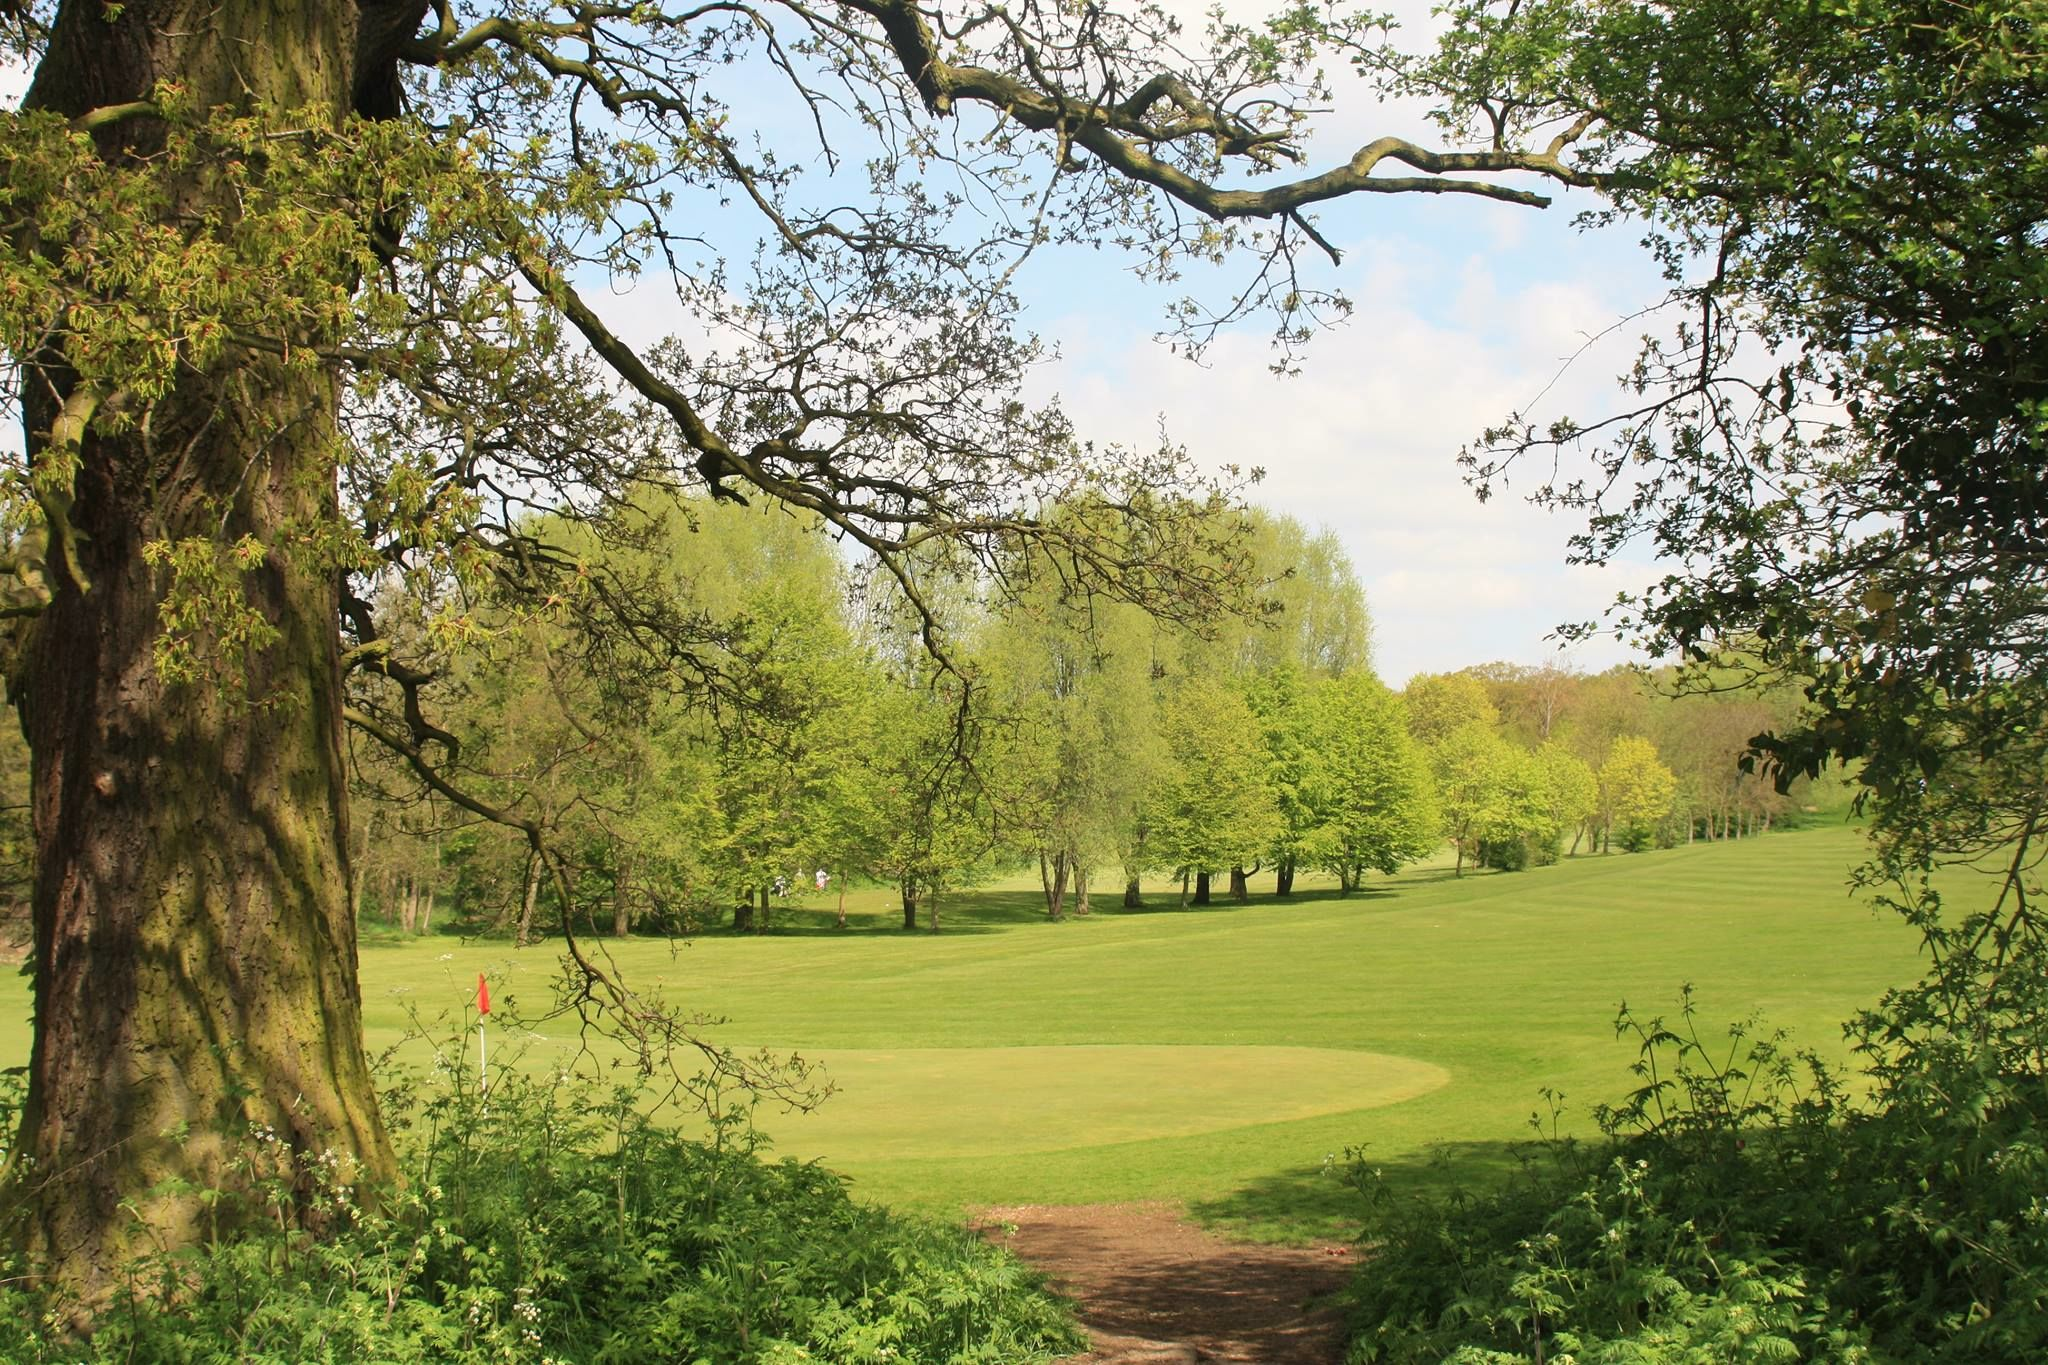 Basildon golf club cover picture